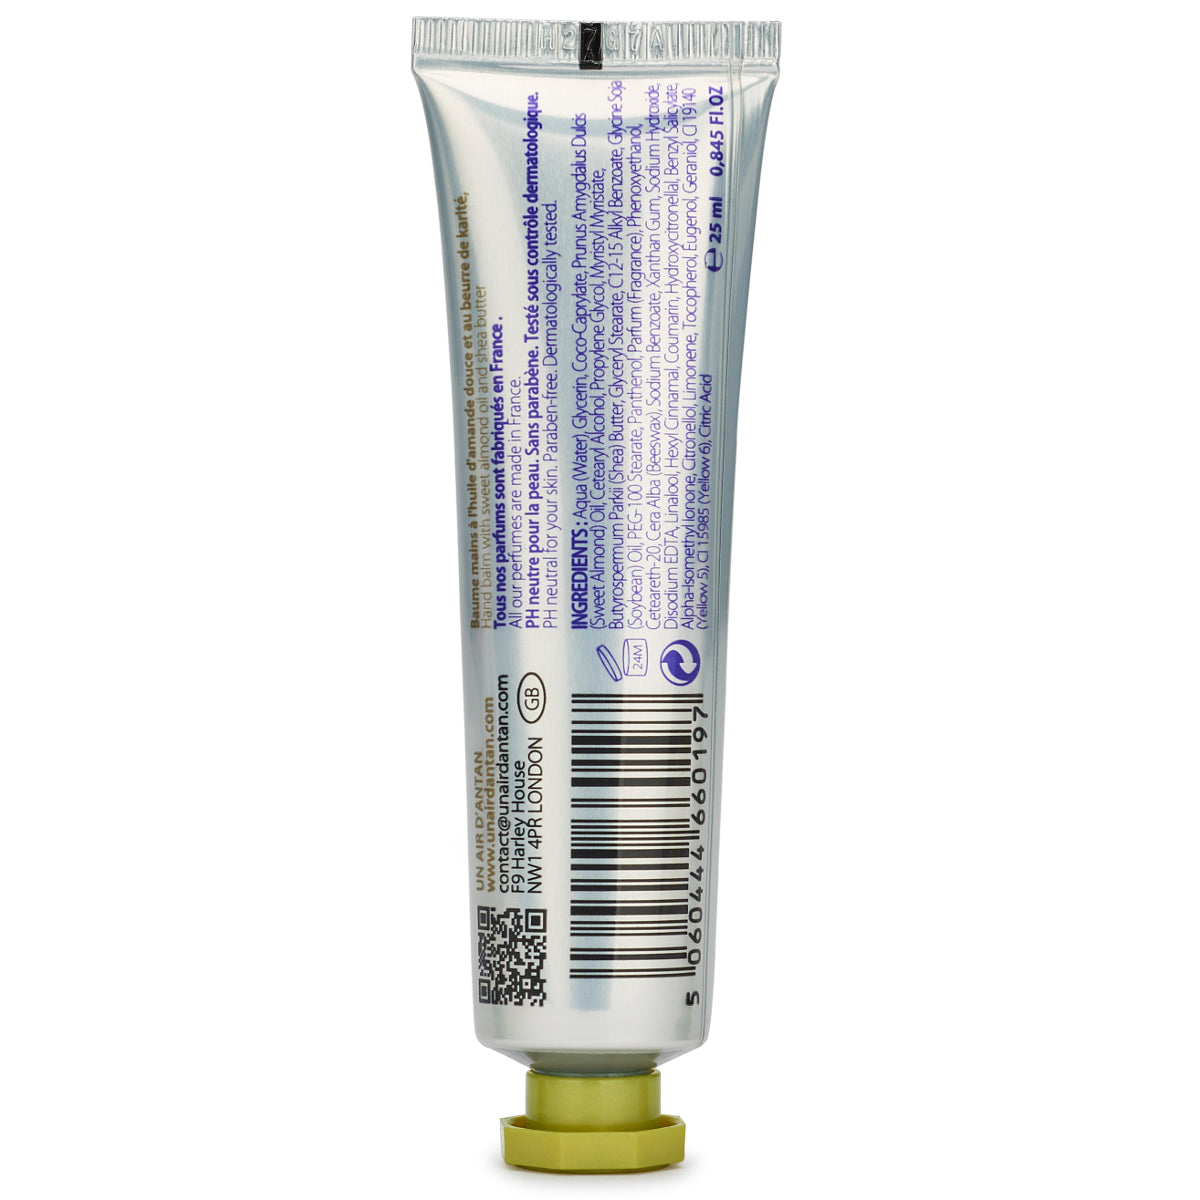 Douce France Hand Cream by Un Air d'Antan on OOSTOR.com